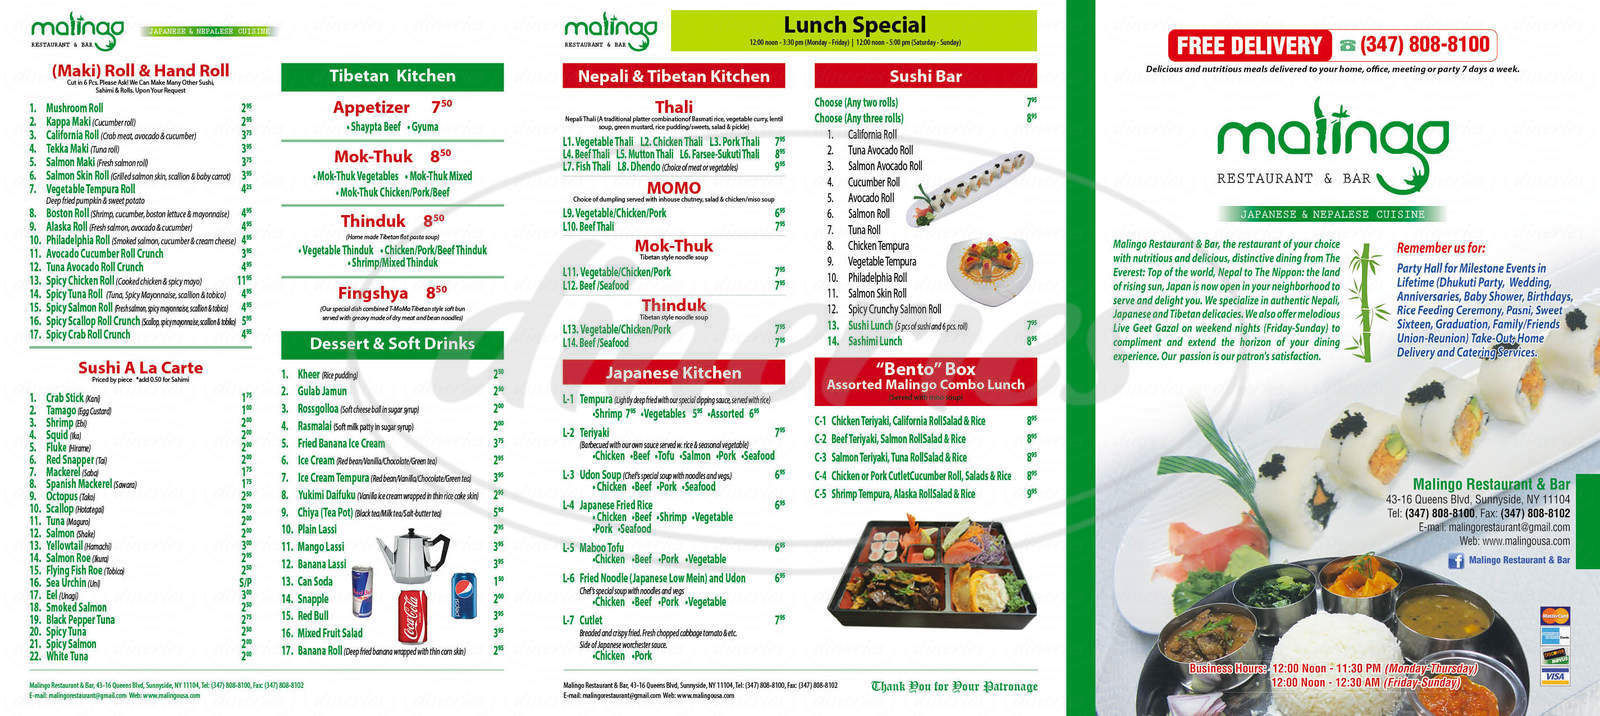 menu for Malingo Restaurant & Bar